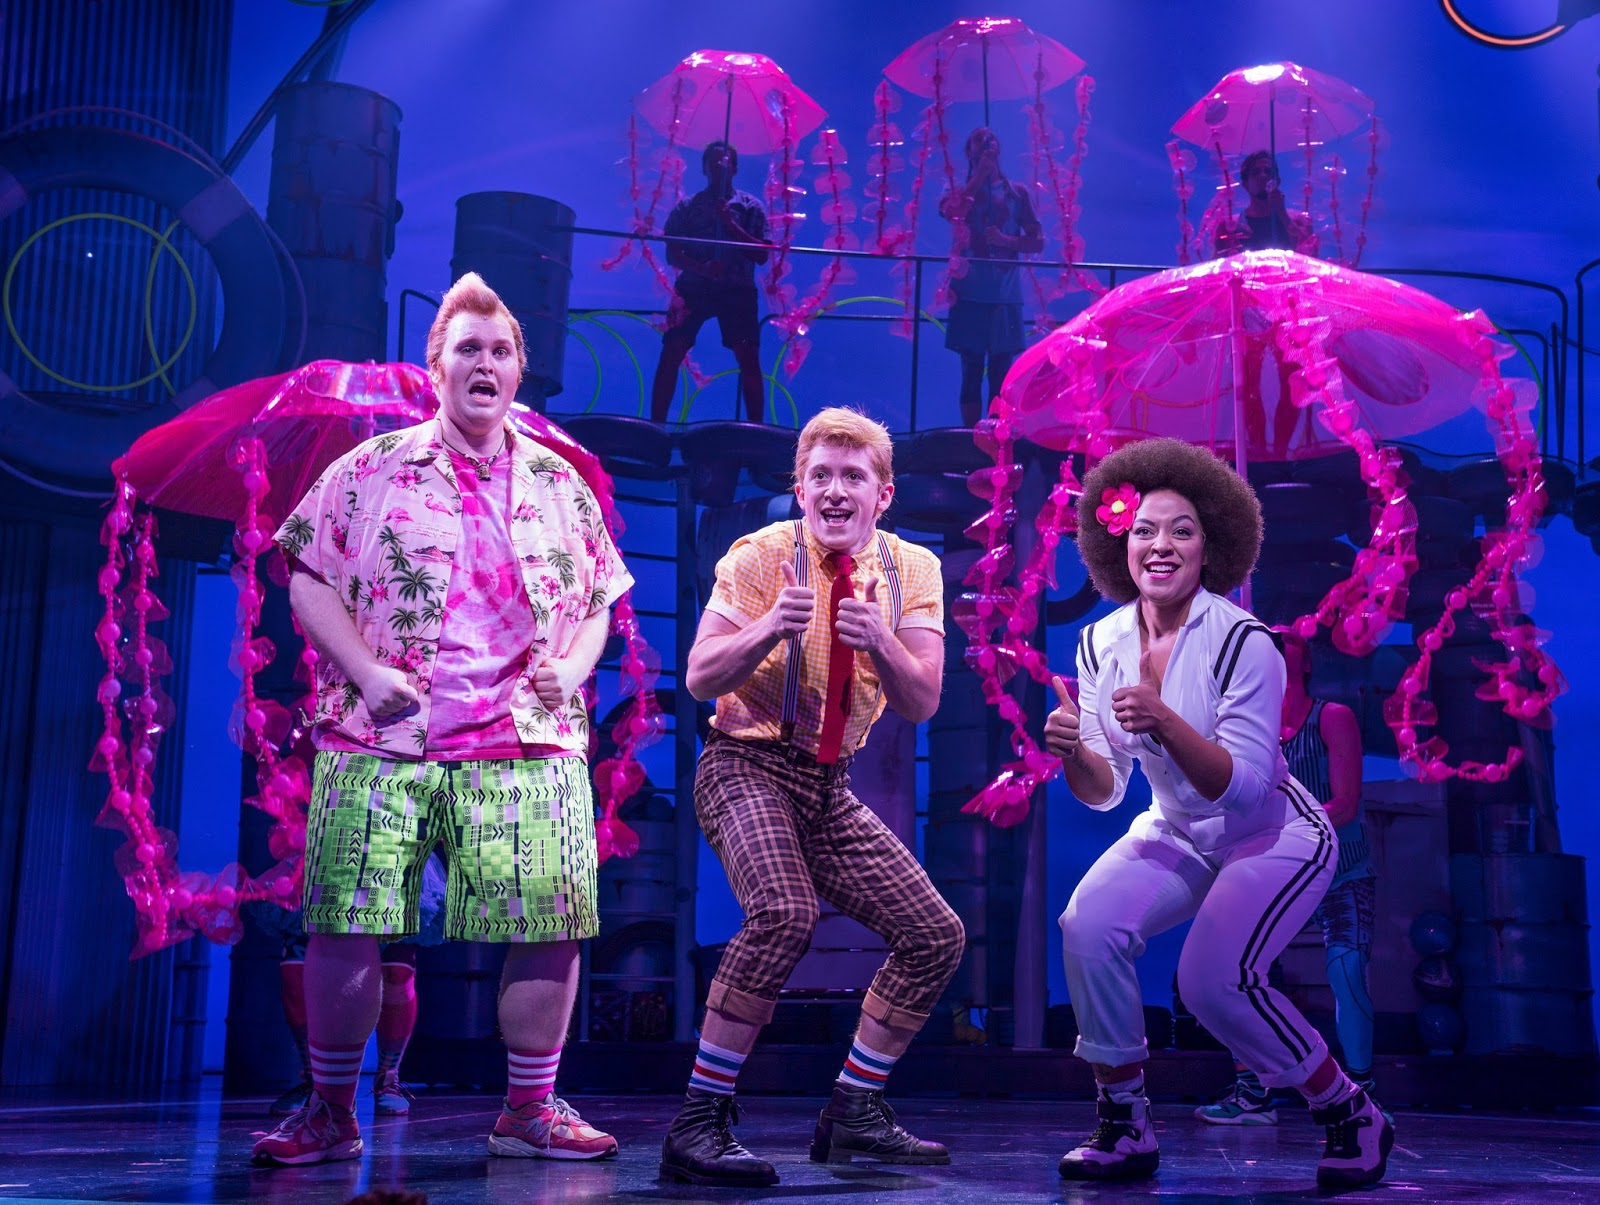 Nickalive with a singing spongebob nickelodeon aims for for The broadway